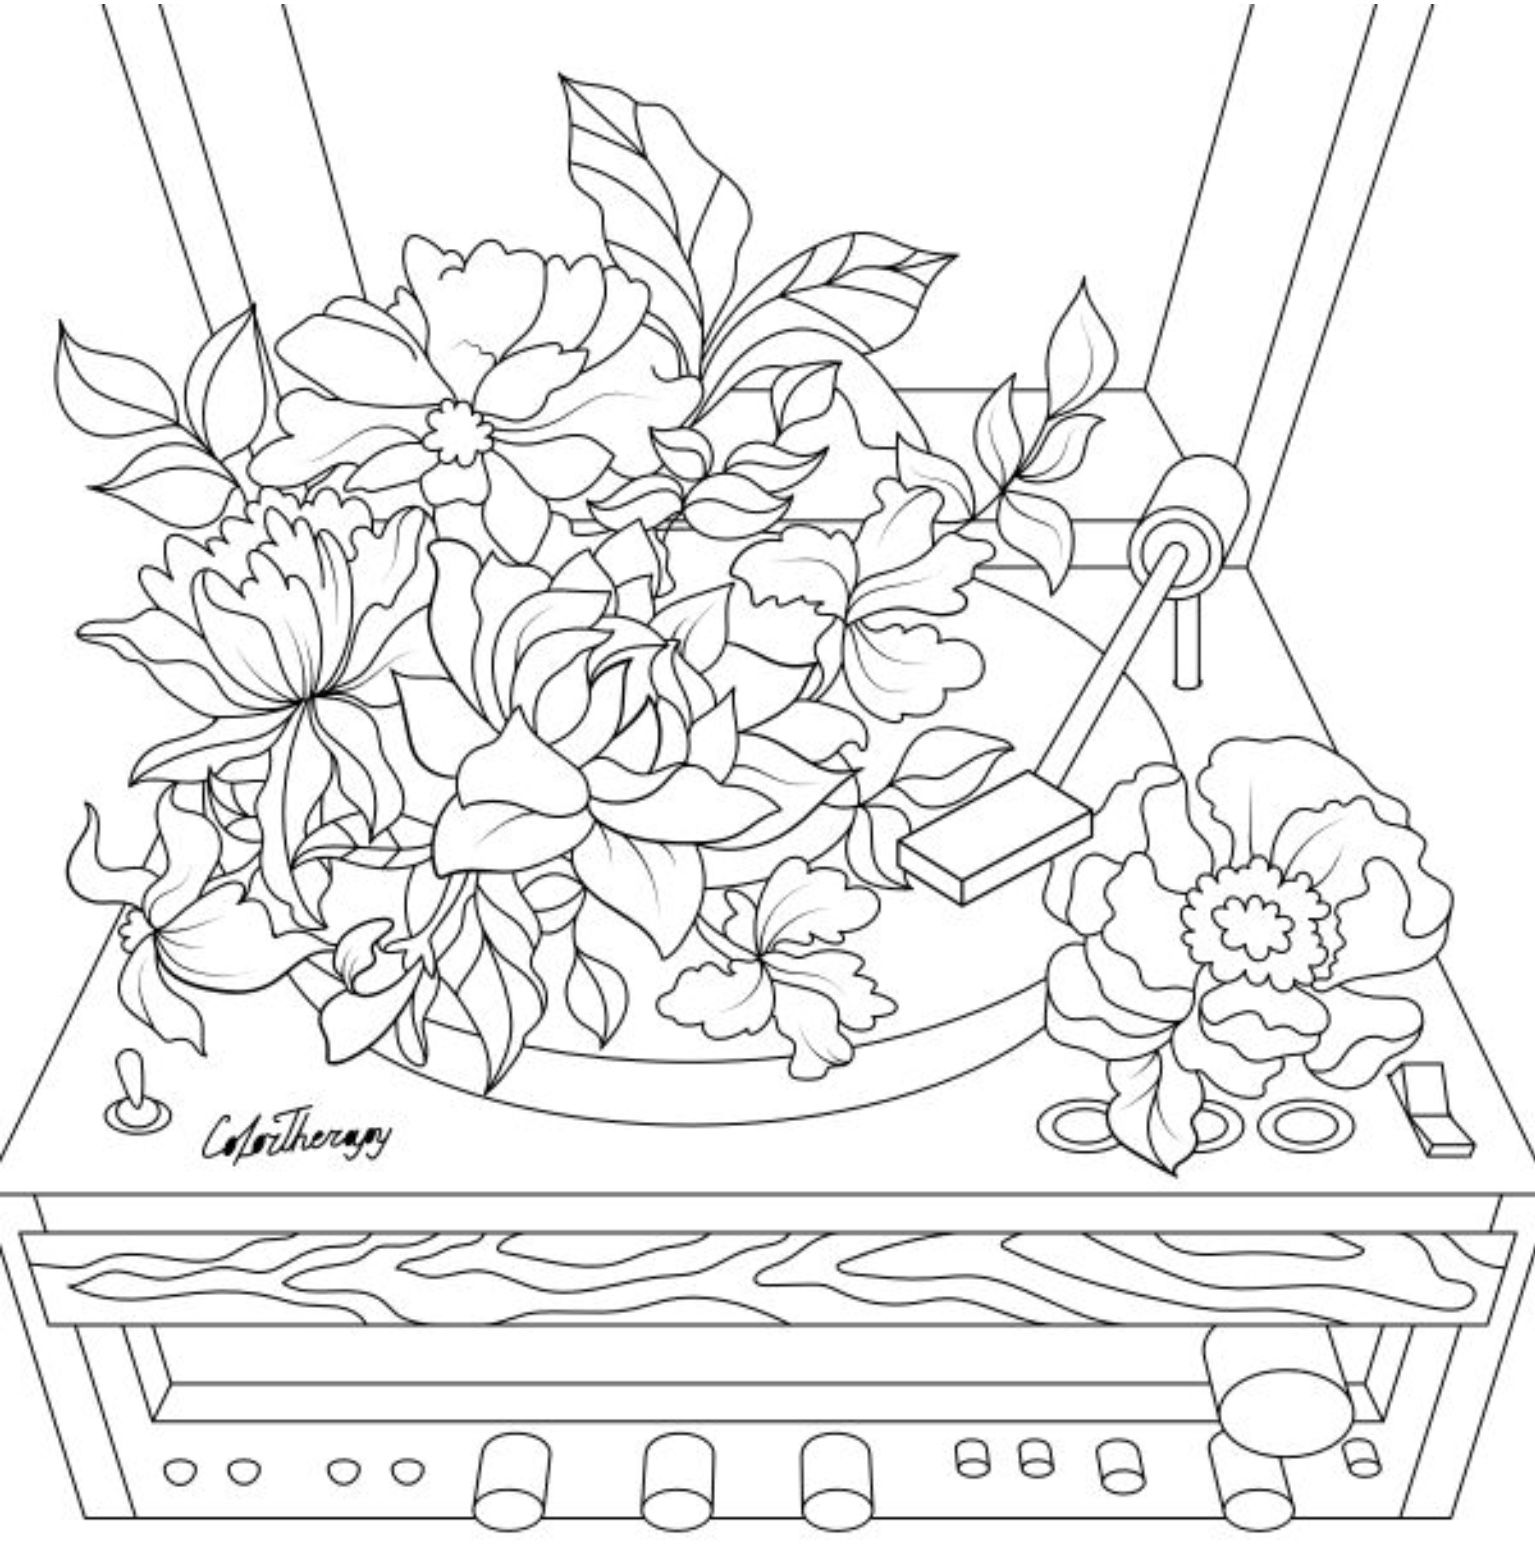 The Sneakpeek For The Next Gift Of The Day Tomorrow Do You Like This One Gramophone Flowers Coloring Books Coloring Pages Cute Coloring Pages